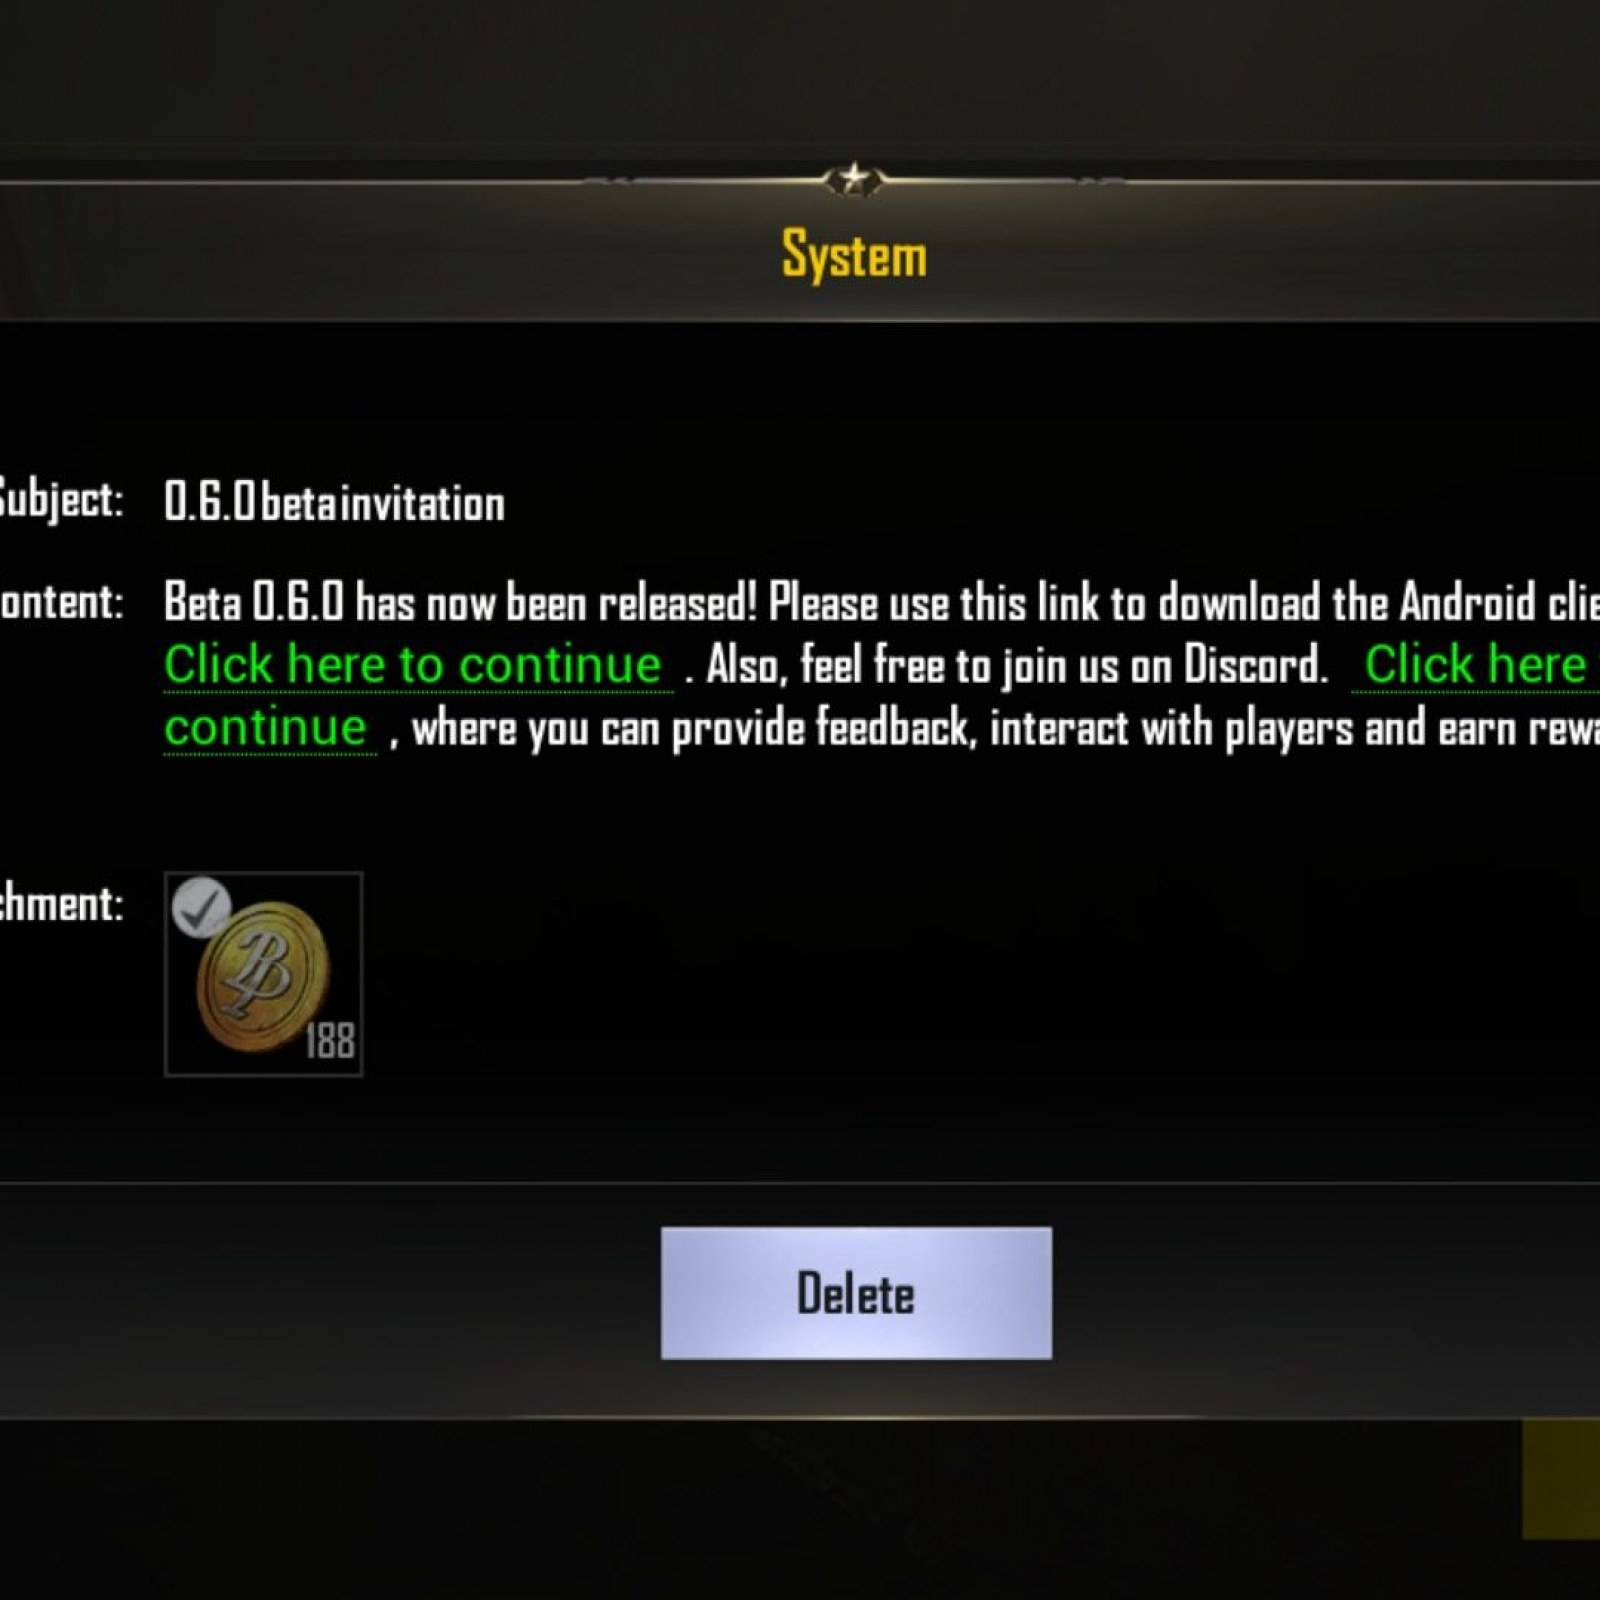 Pubg Mobile 0 6 0 Beta Test How To Try The New Version With - pubg mobile 0 6 0 beta test how to try the new version with without invitation